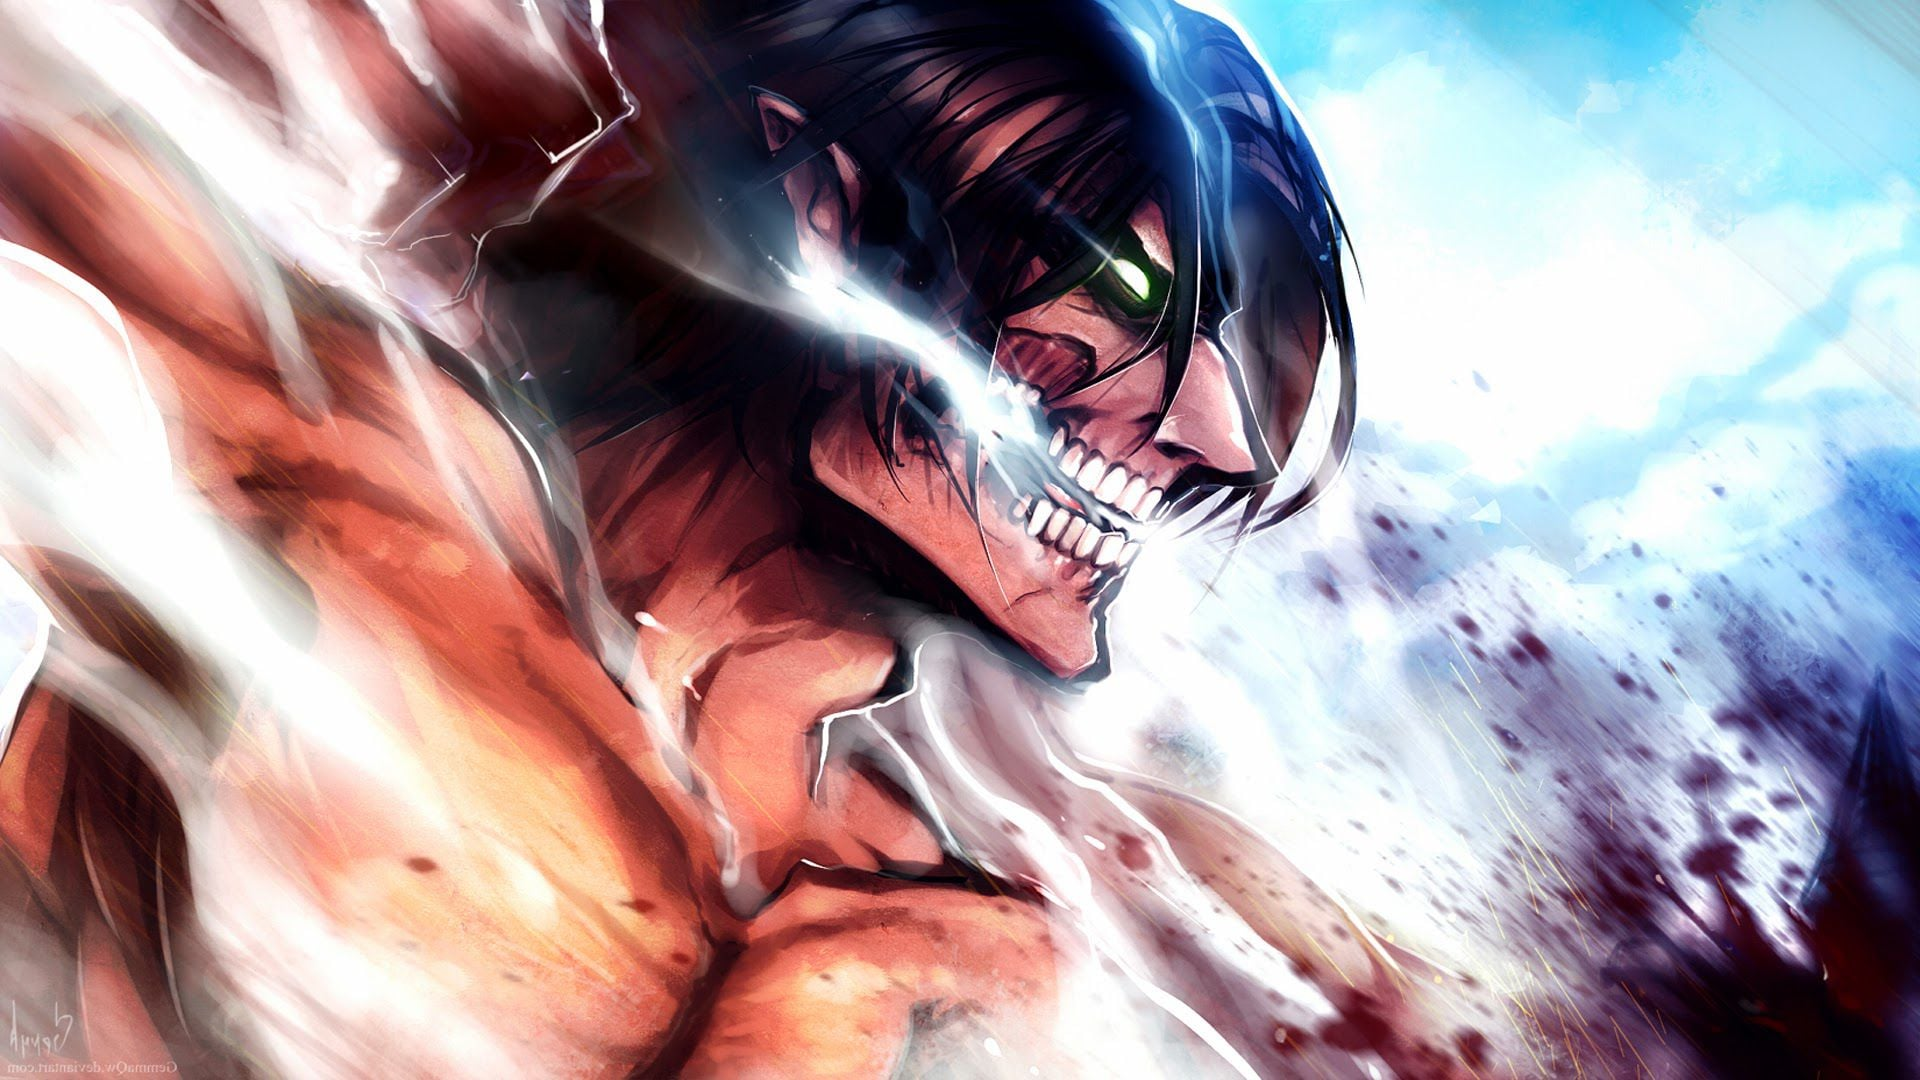 Car 5760x1080 Wallpaper 17 Eren Yeager Attack On Titan Wallpapers Hd Download